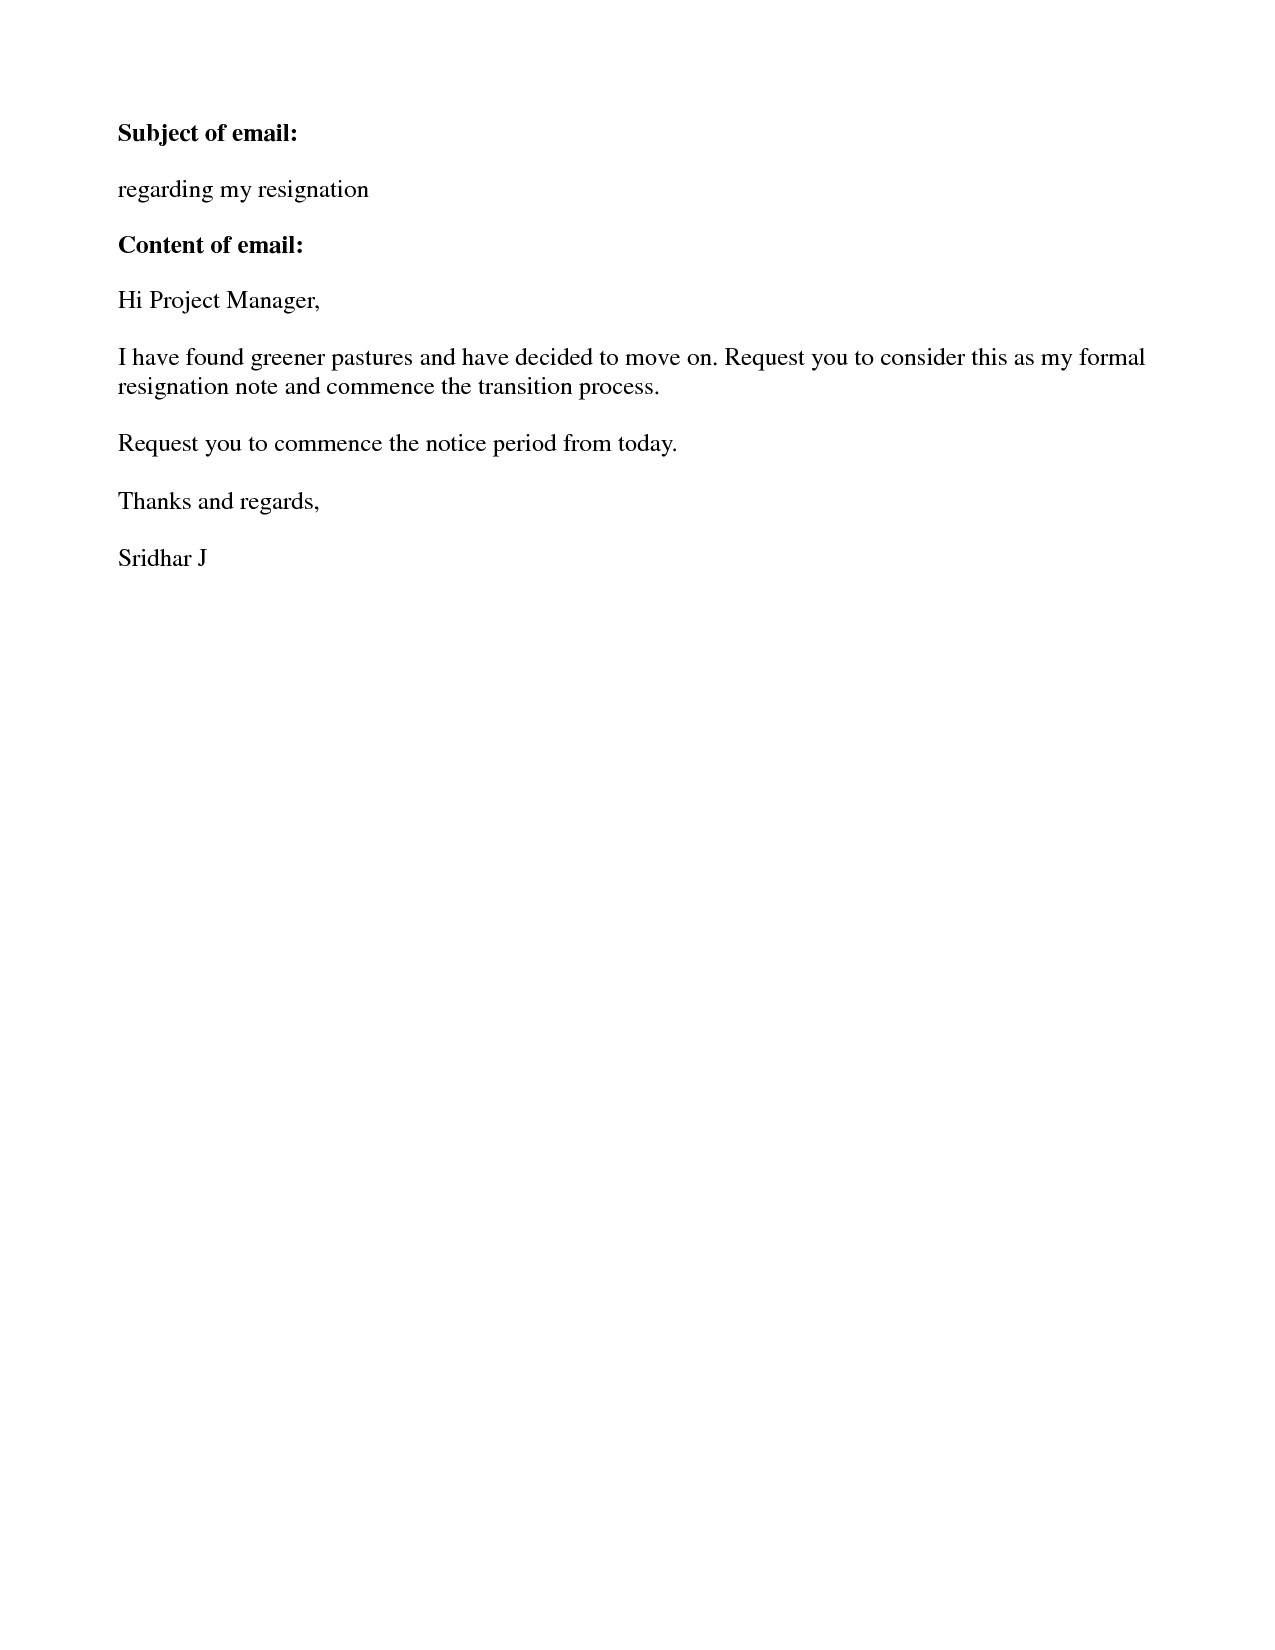 Basic Cover Letter Sample from mthomearts.com